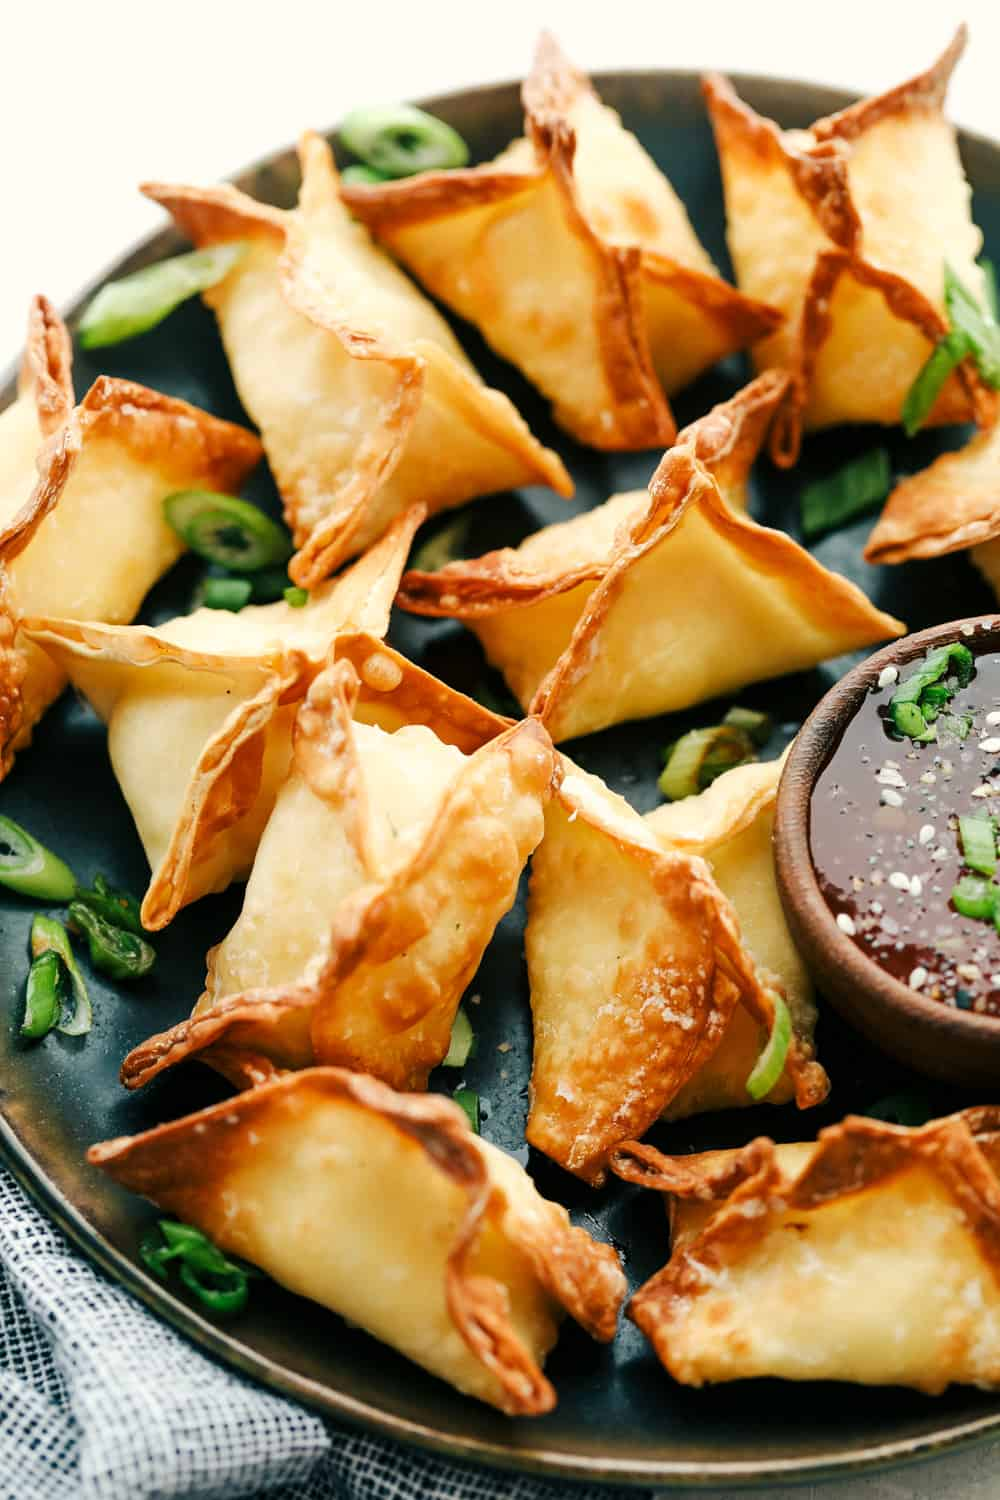 Air fryer wontons on a plate close up.